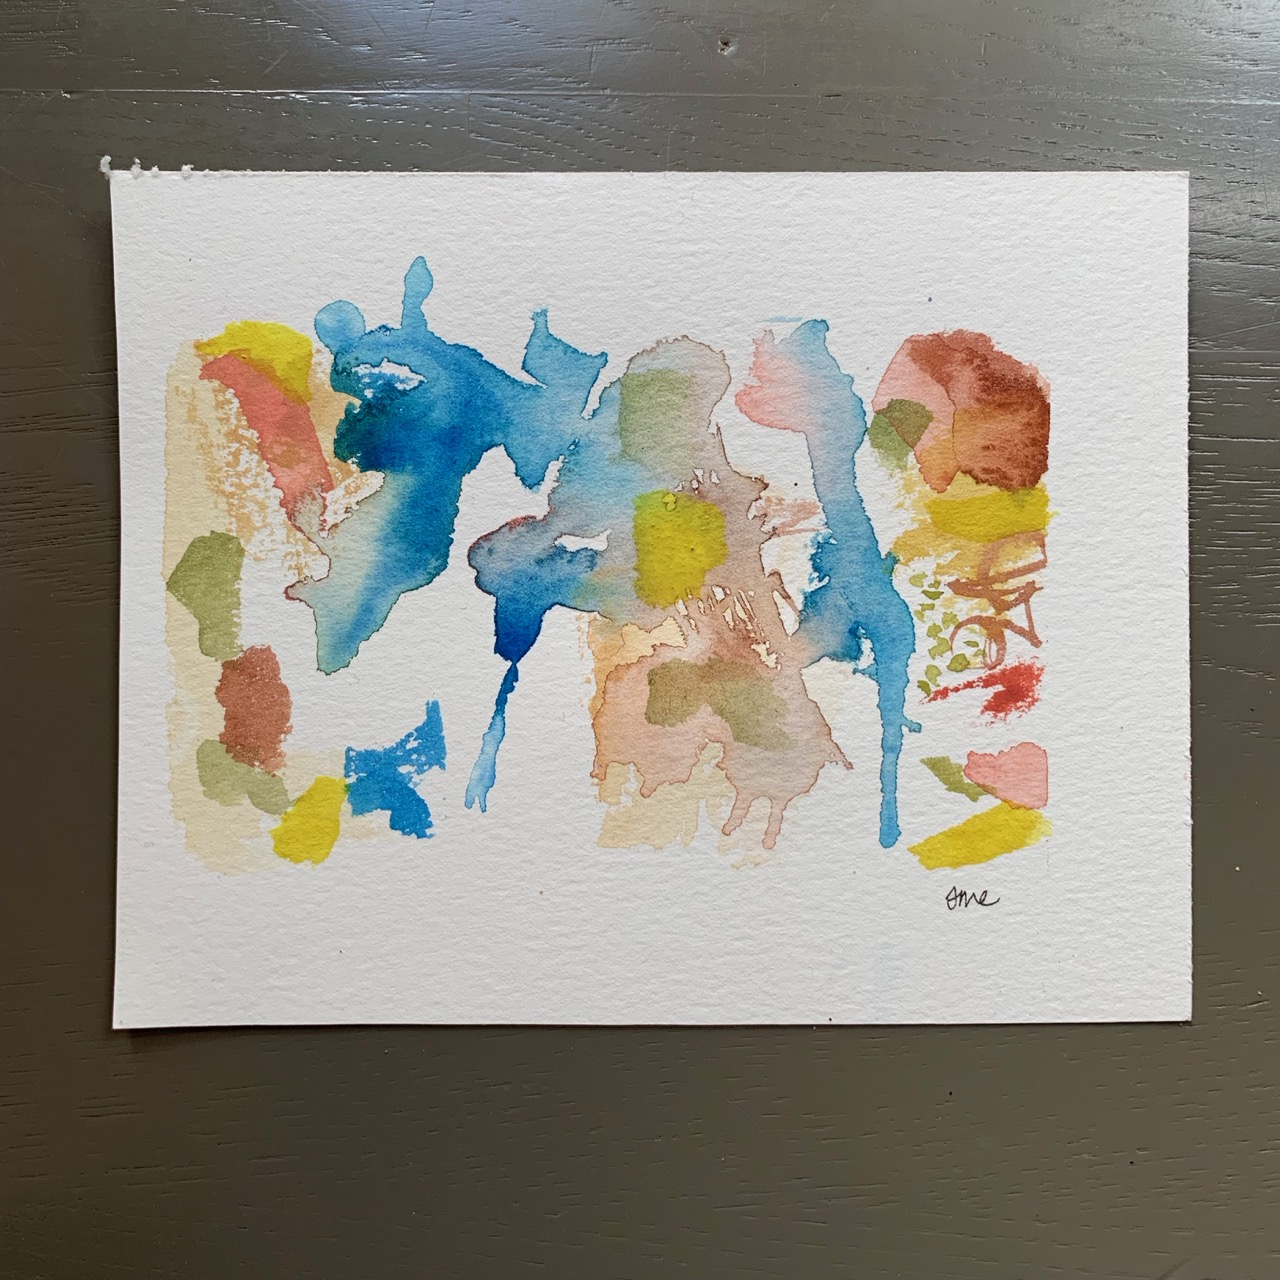 100 days abstract watercolor - 4.jpg